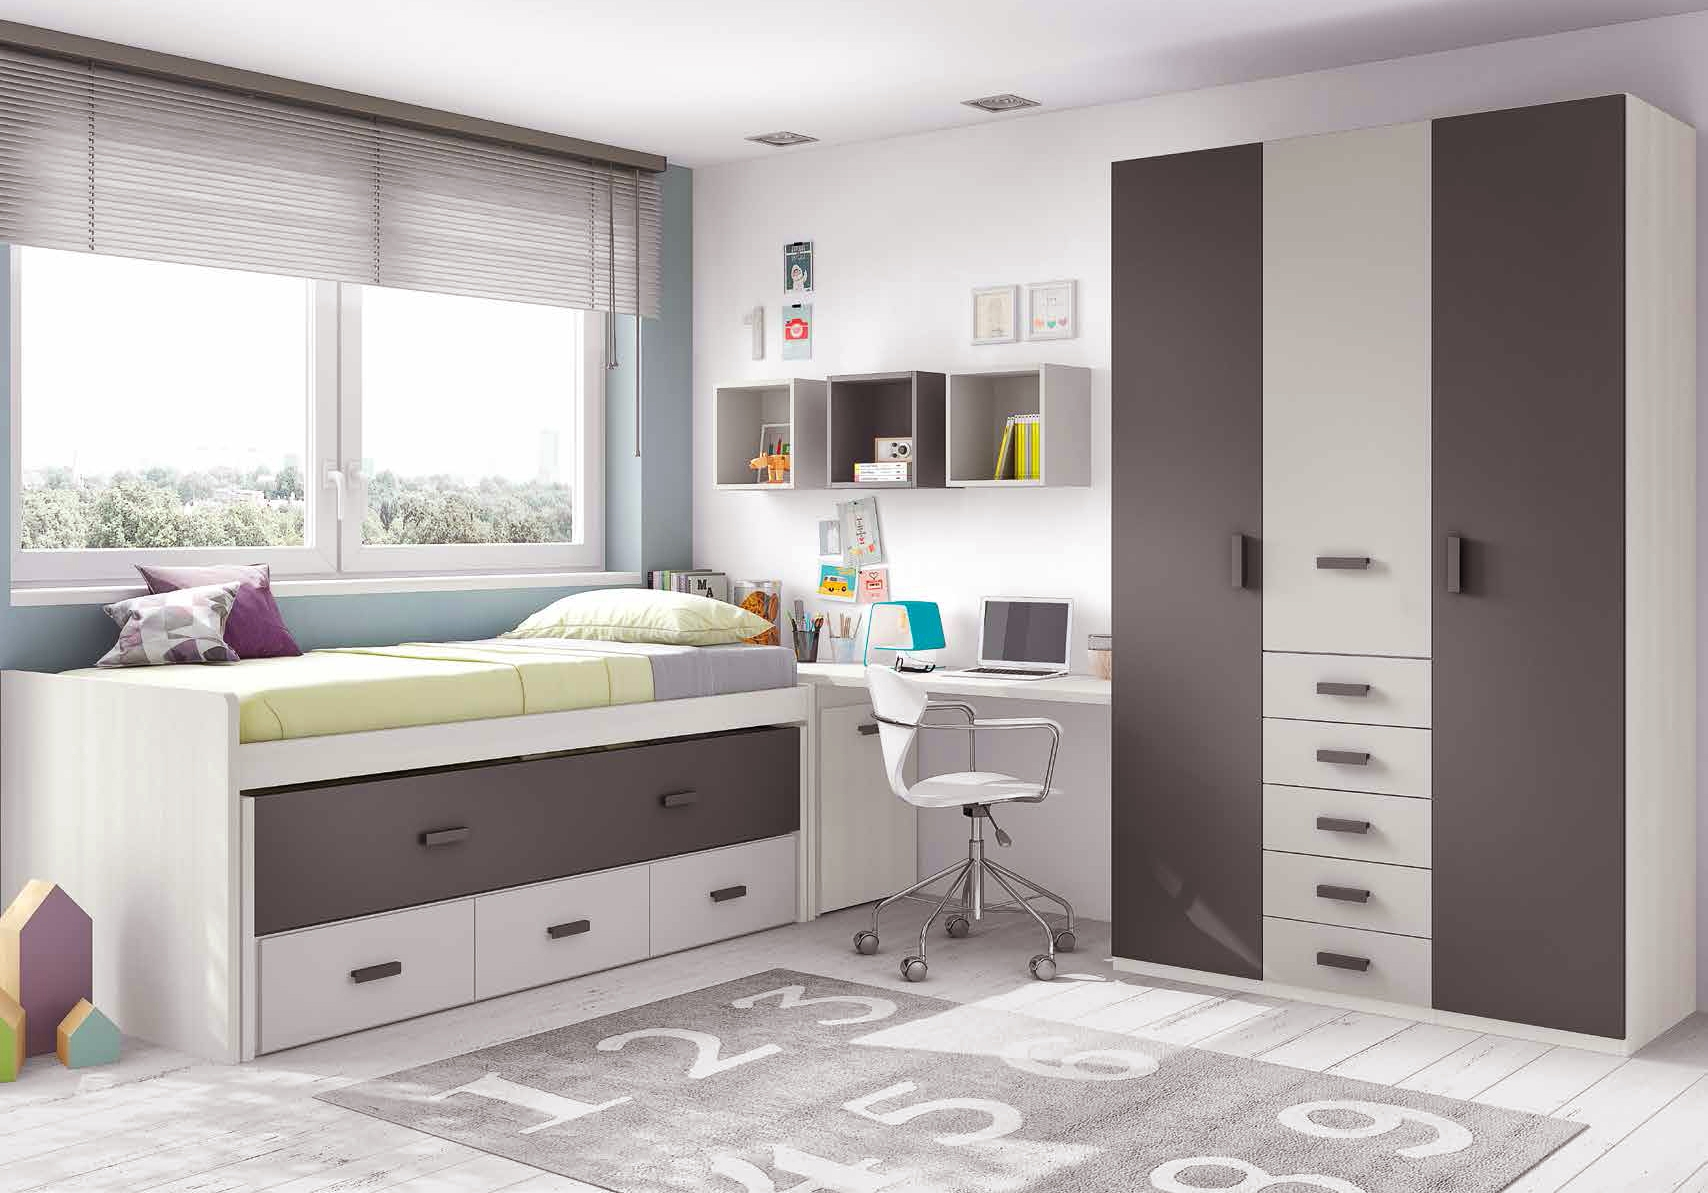 chambre ado garcon moderne avec lit gigogne glicerio so nuit. Black Bedroom Furniture Sets. Home Design Ideas